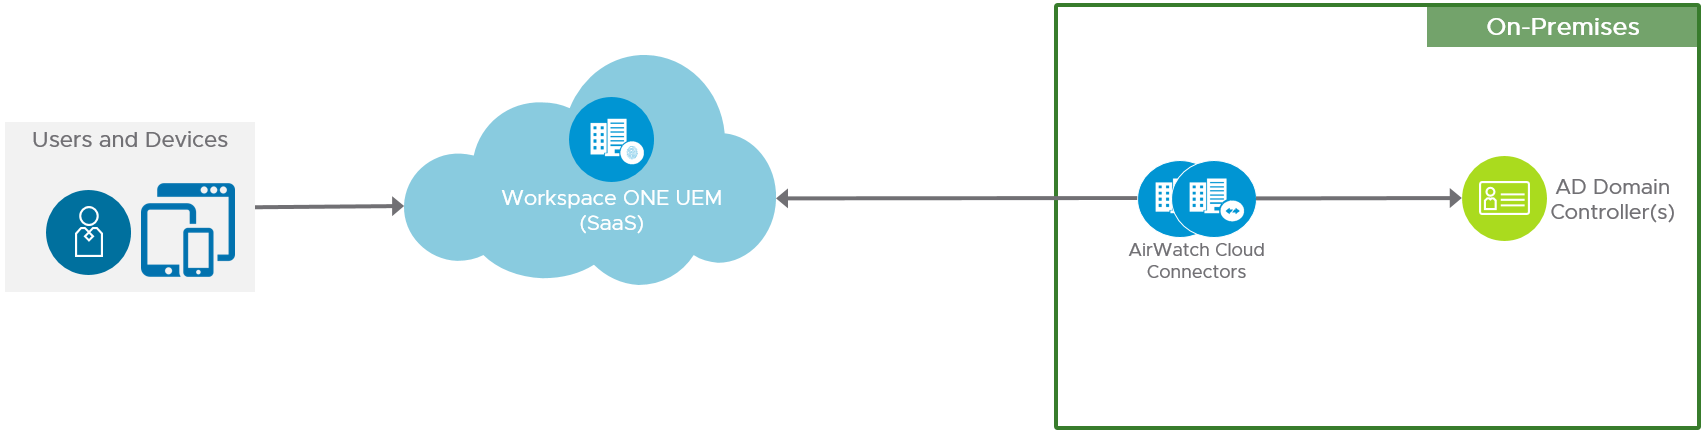 Cloud-Based Workspace ONE UEM Logical Architecture